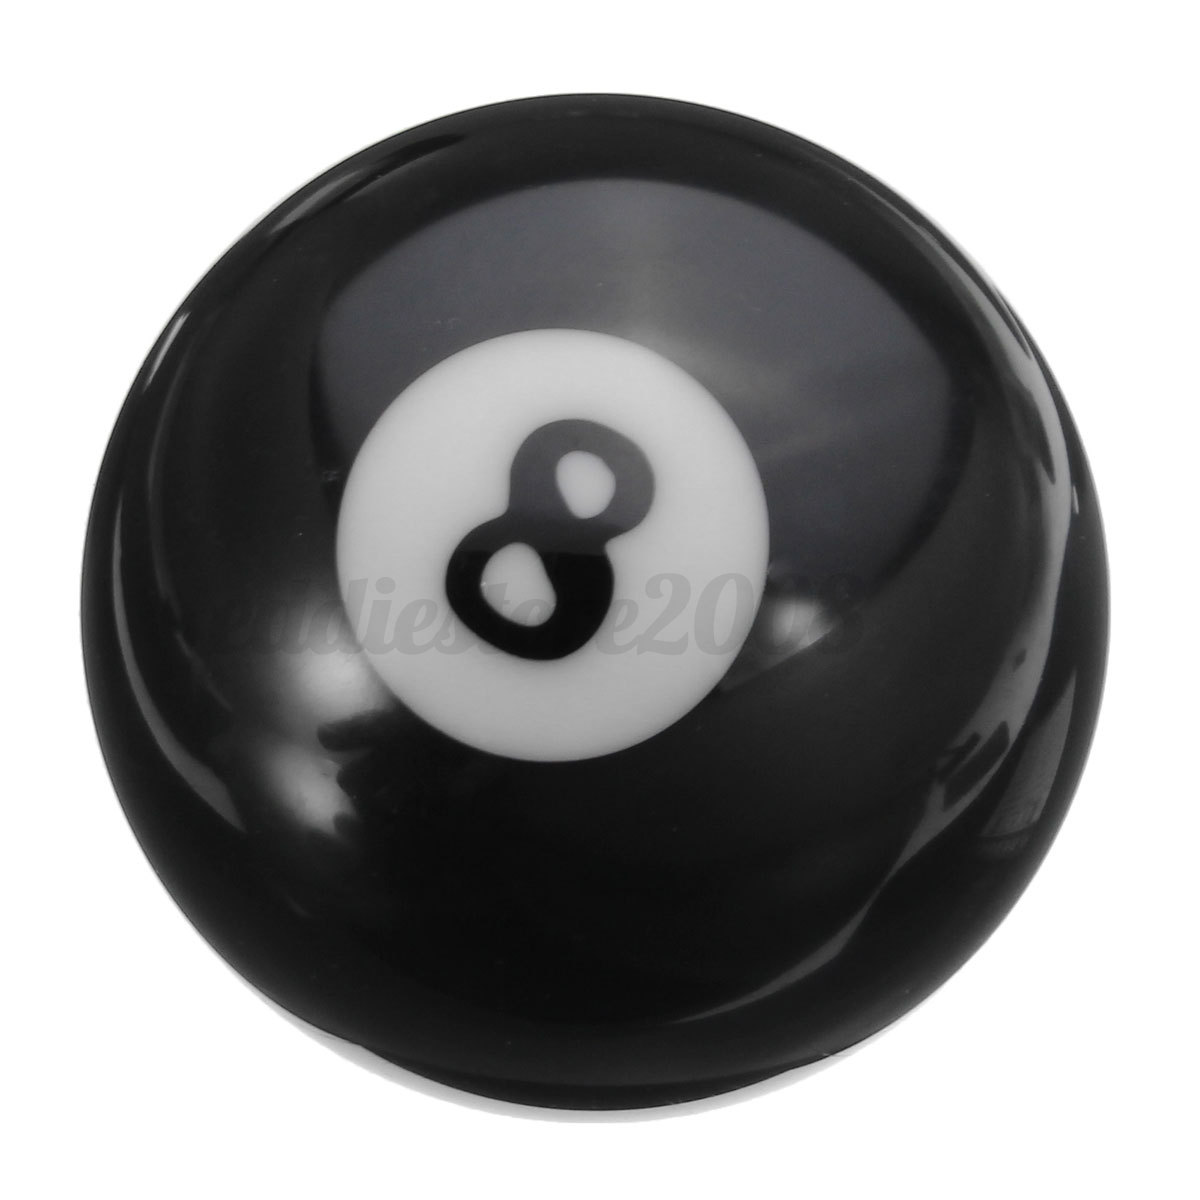 New 1pcs 8 billiard pool ball replacement part black eight ball 2 1 4 ebay - 8 ball pictures ...